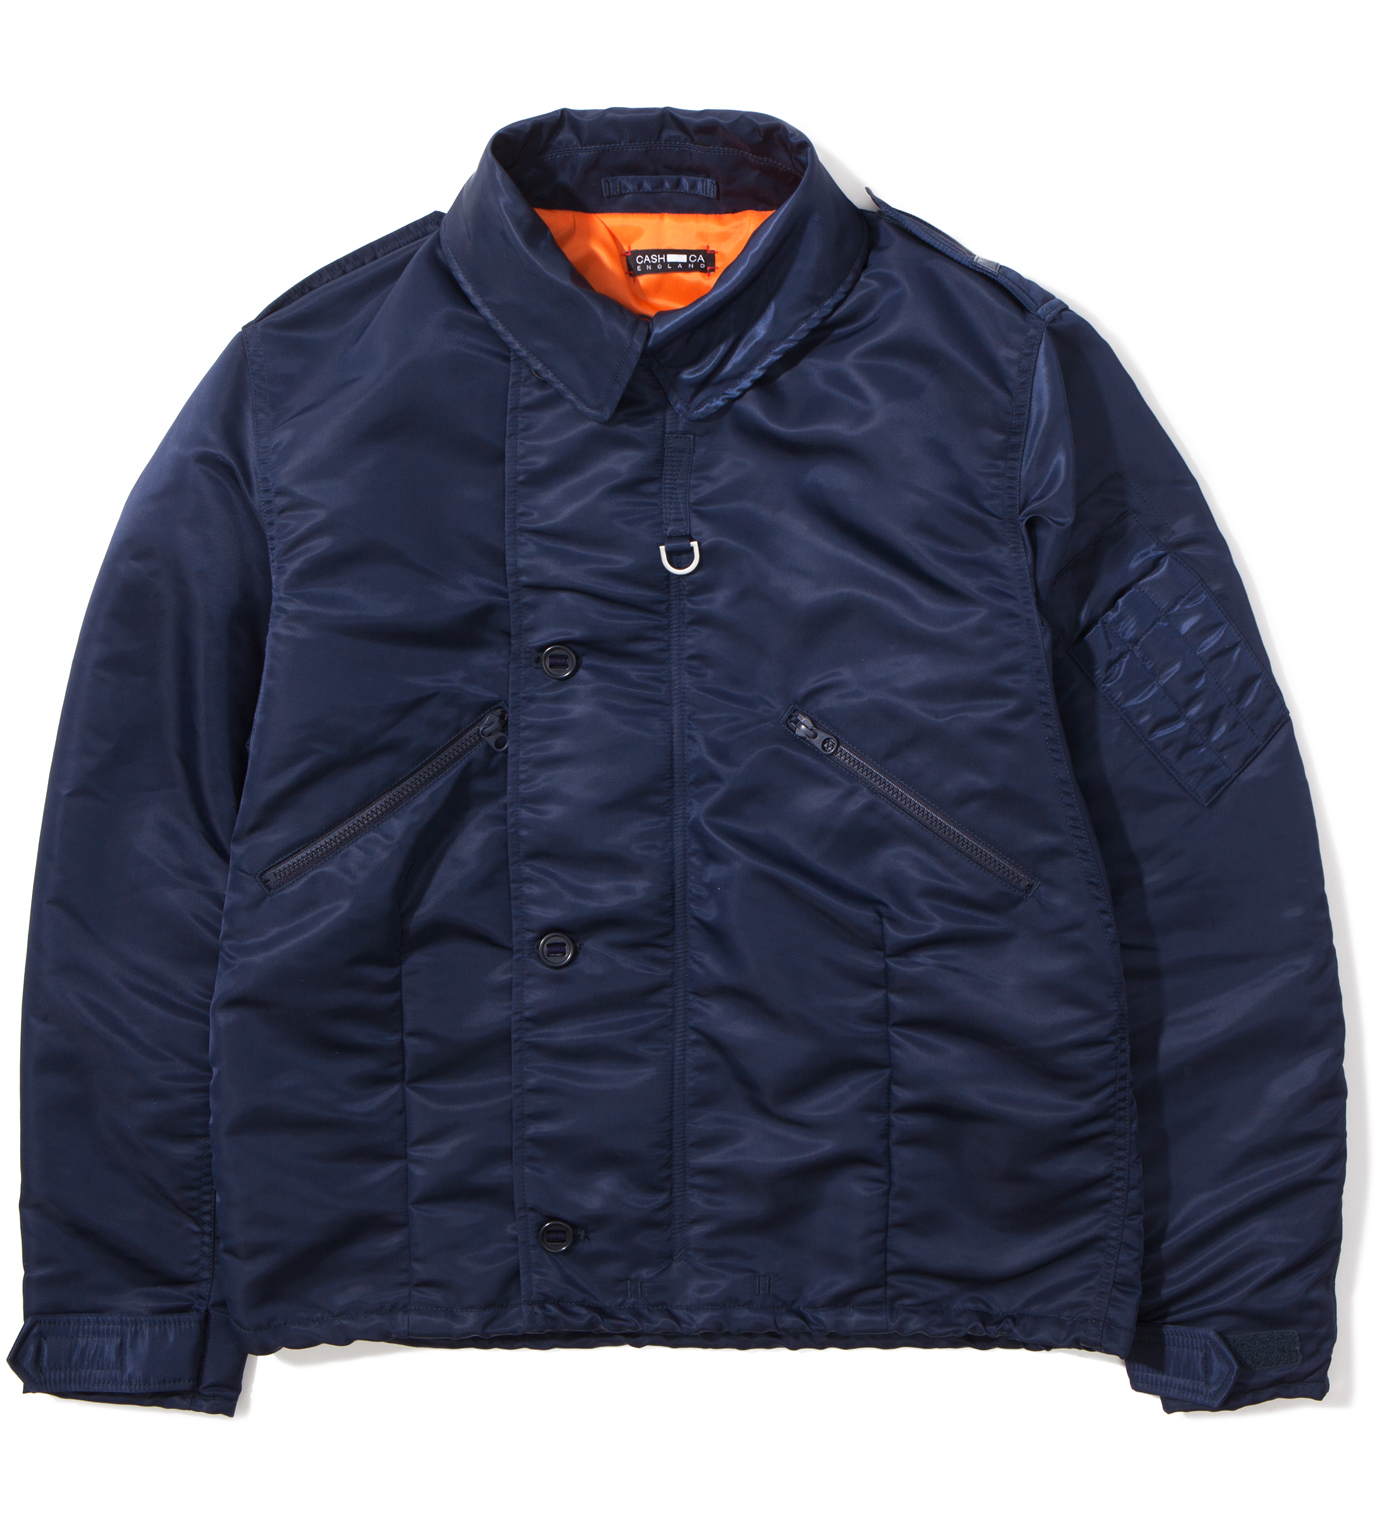 CASH CA Navy Flight Jacket